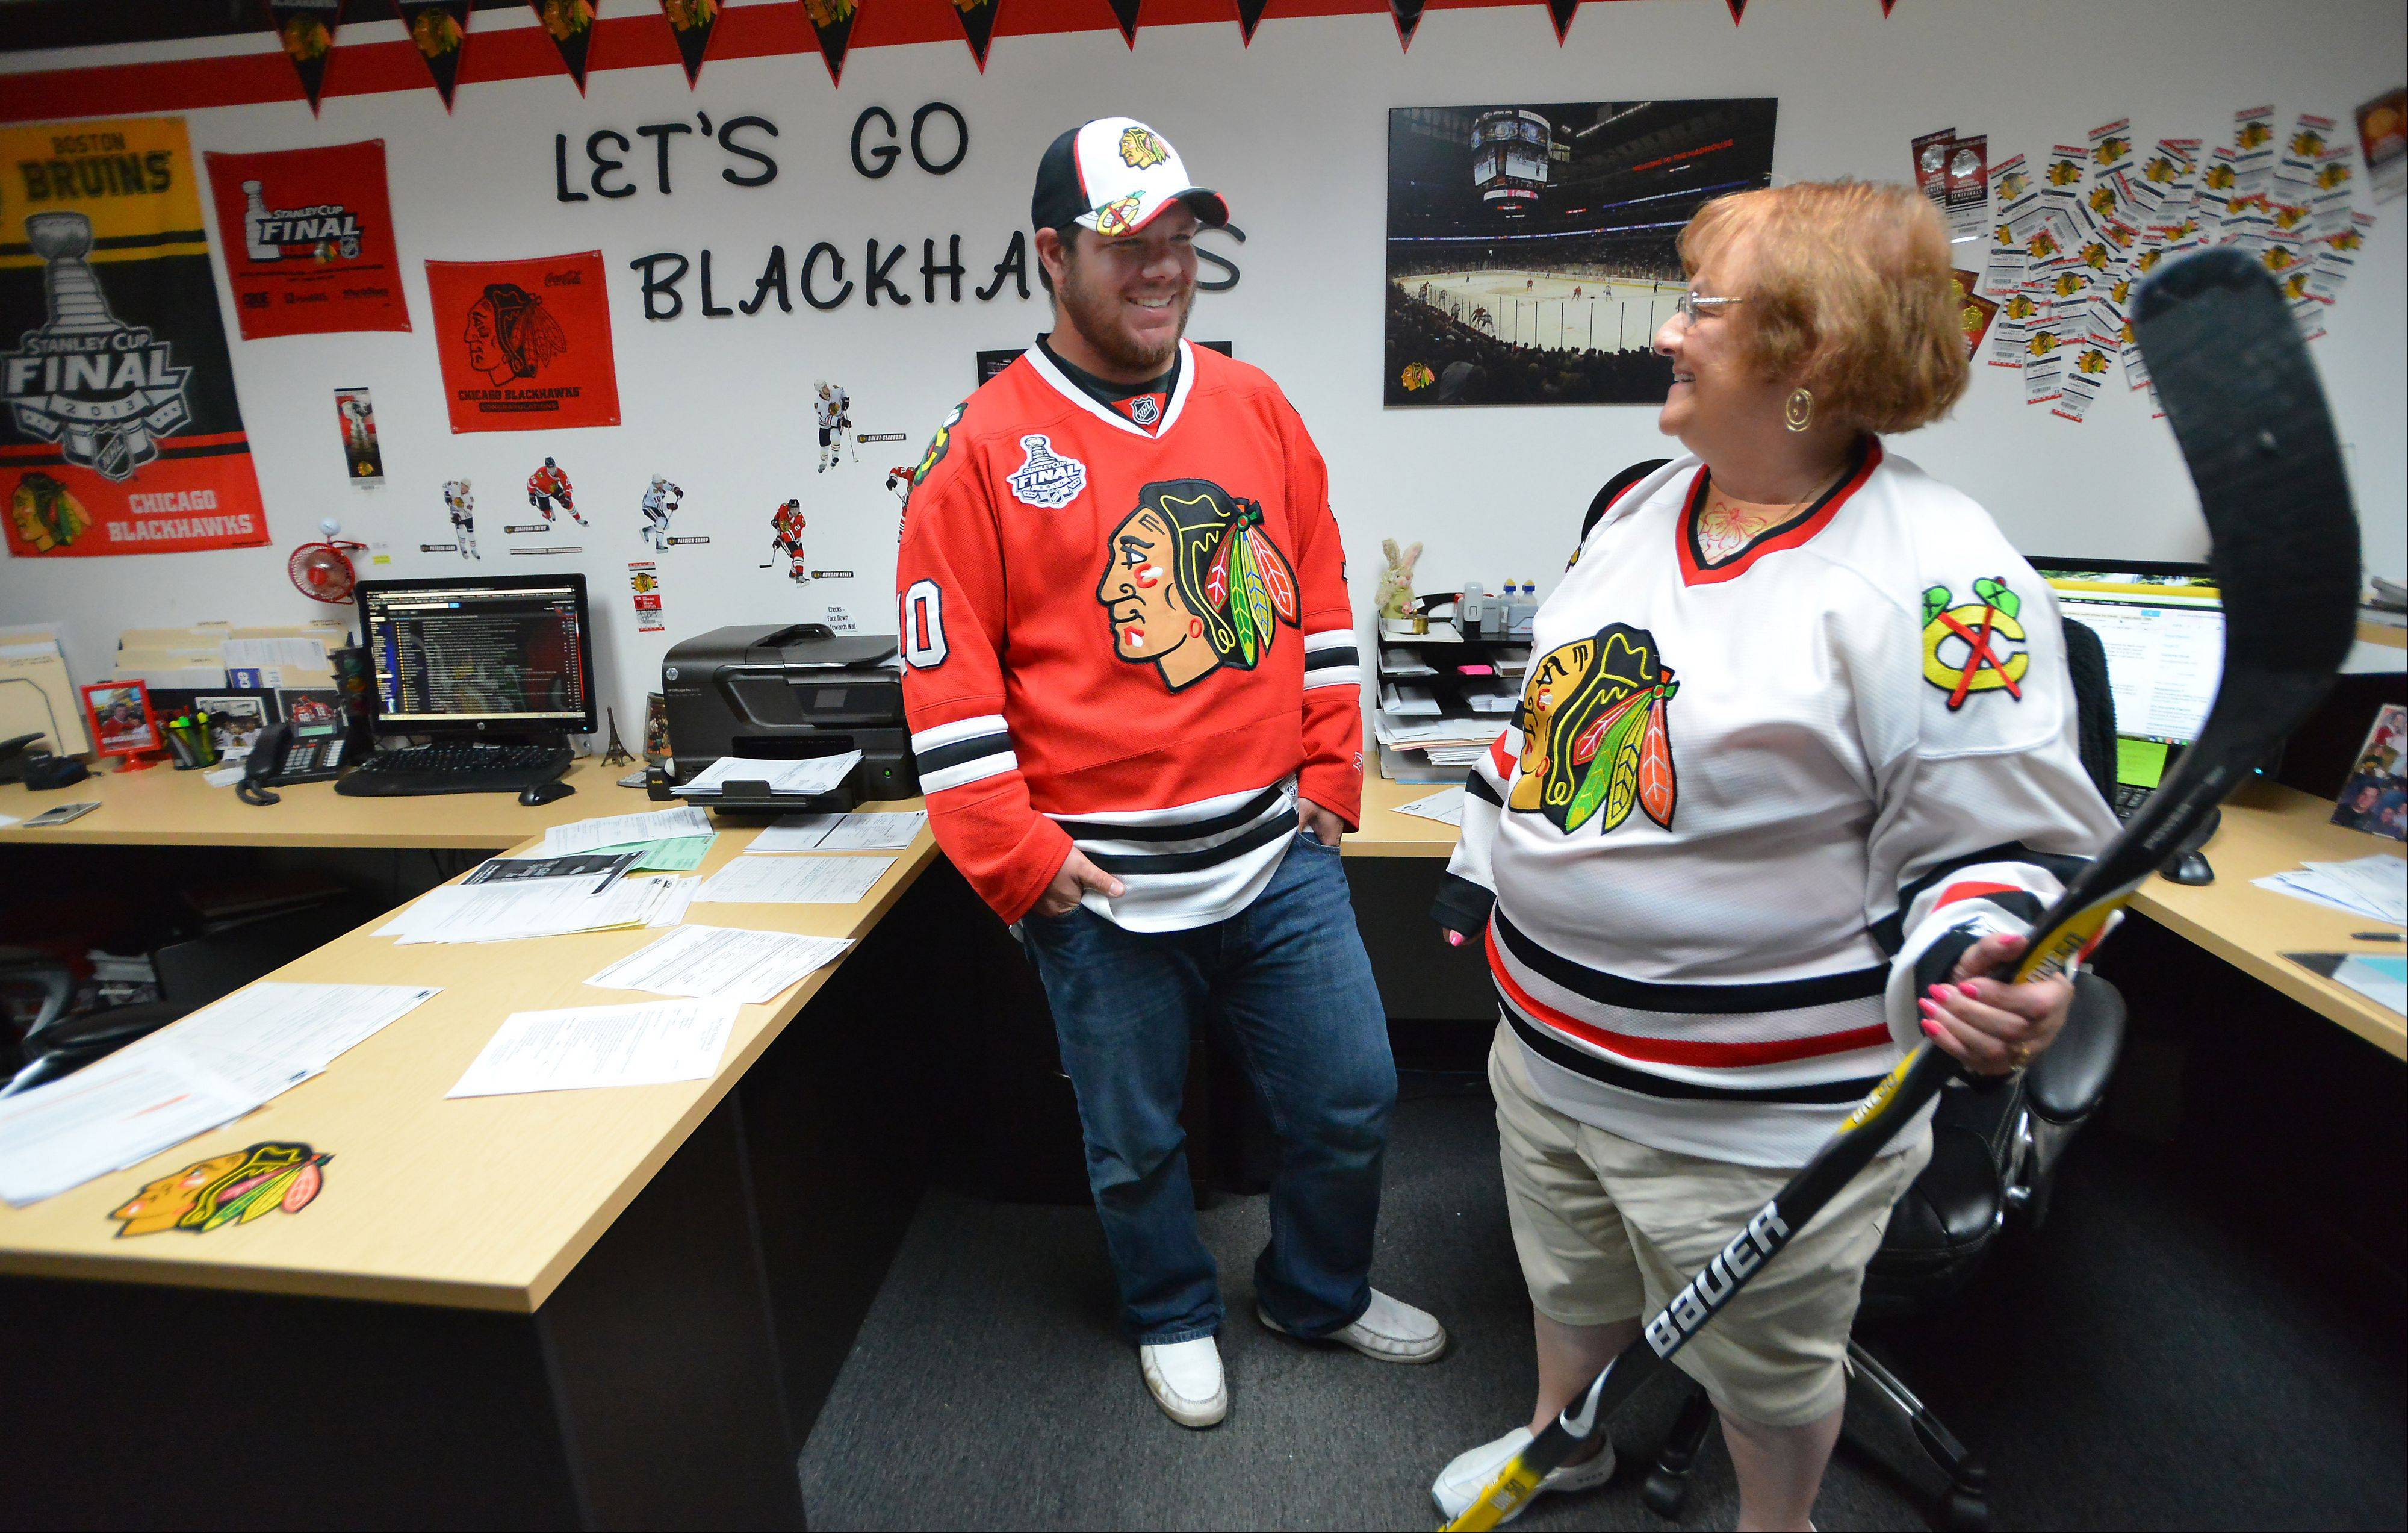 Bille Marcum and his grandmother, Sandy, stand in their Chicago Blackhawks-themed office at Pro-Tech Roofing Co. in Des Plaines. The Marcum family converted the office into a shrine for their beloved Chicago Blackhawks.